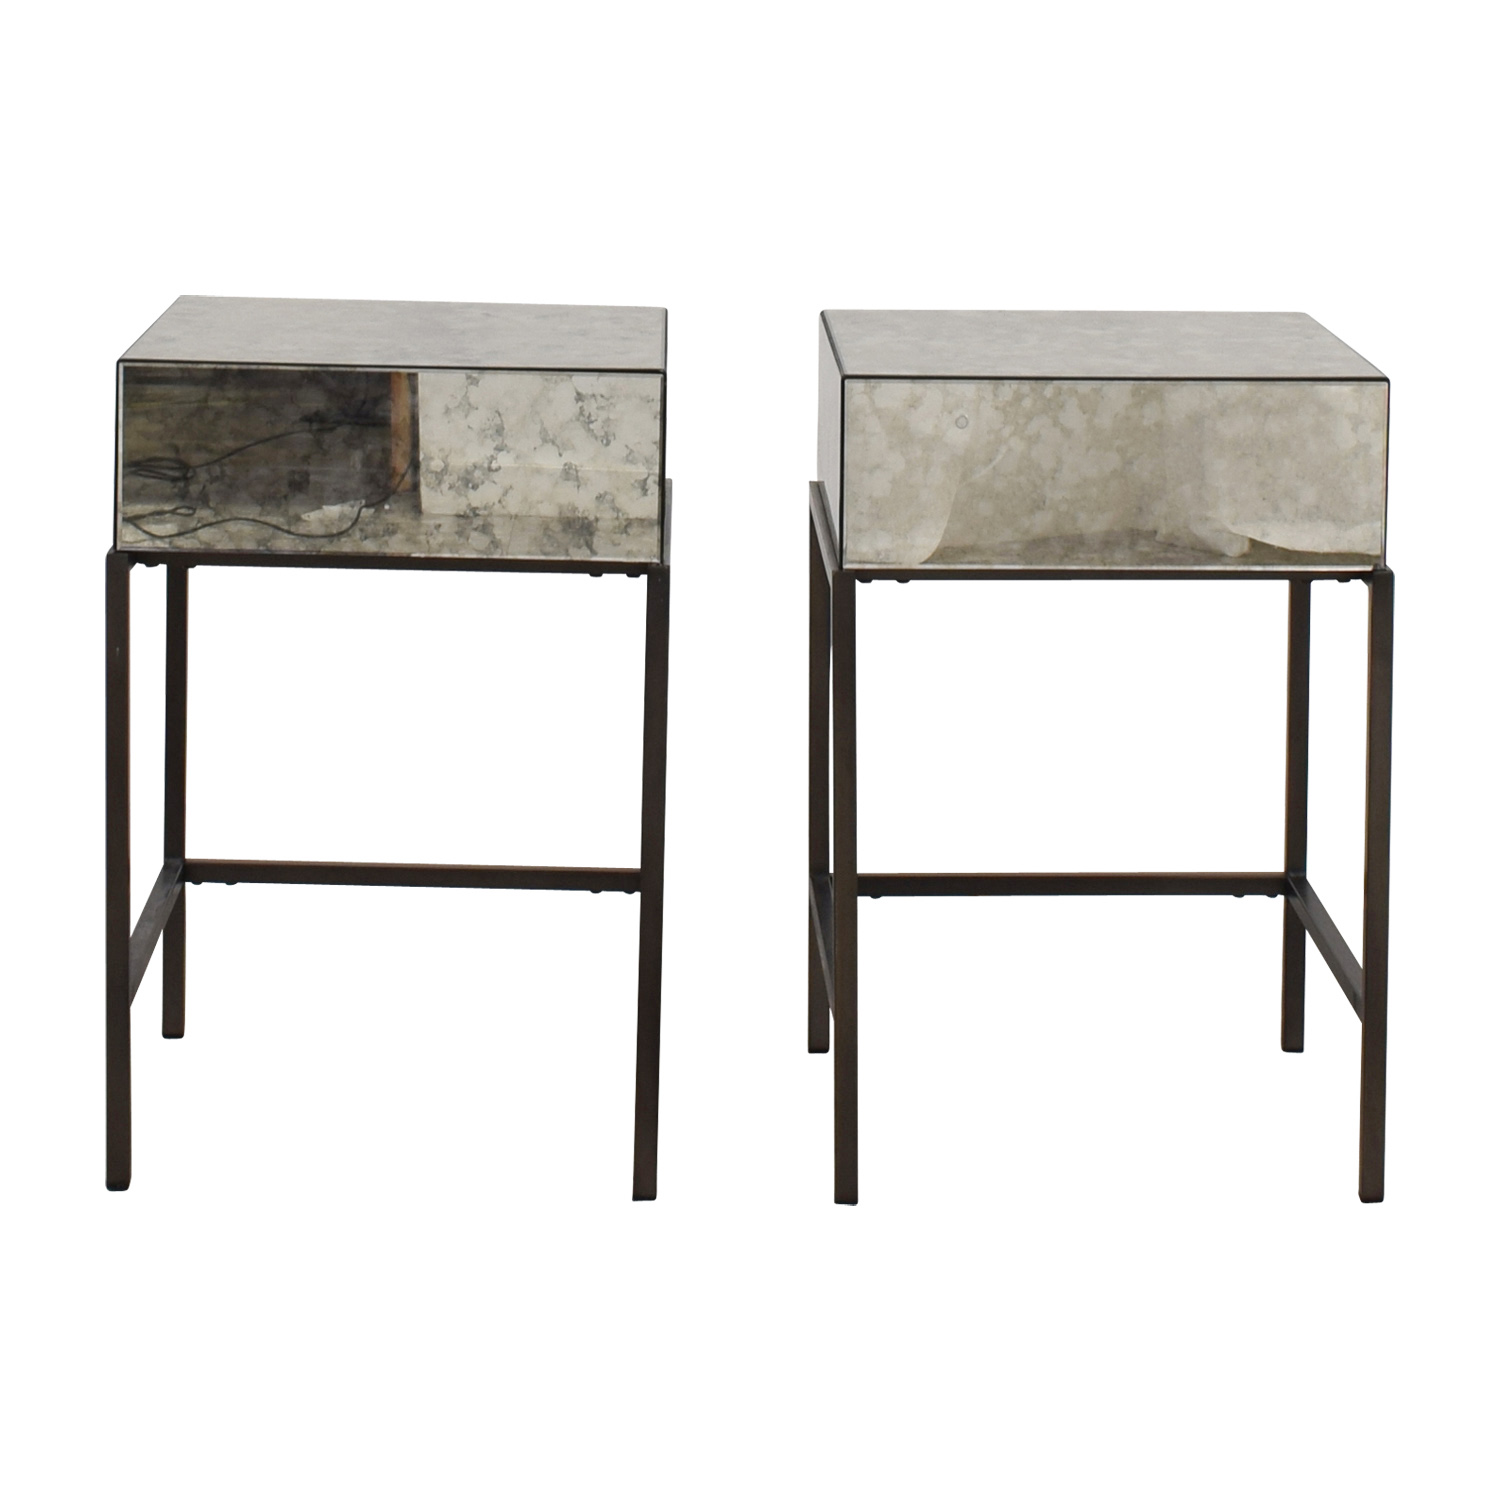 41 Off West Elm West Elm Foxed Mirror Single Drawer Nightstands Tables